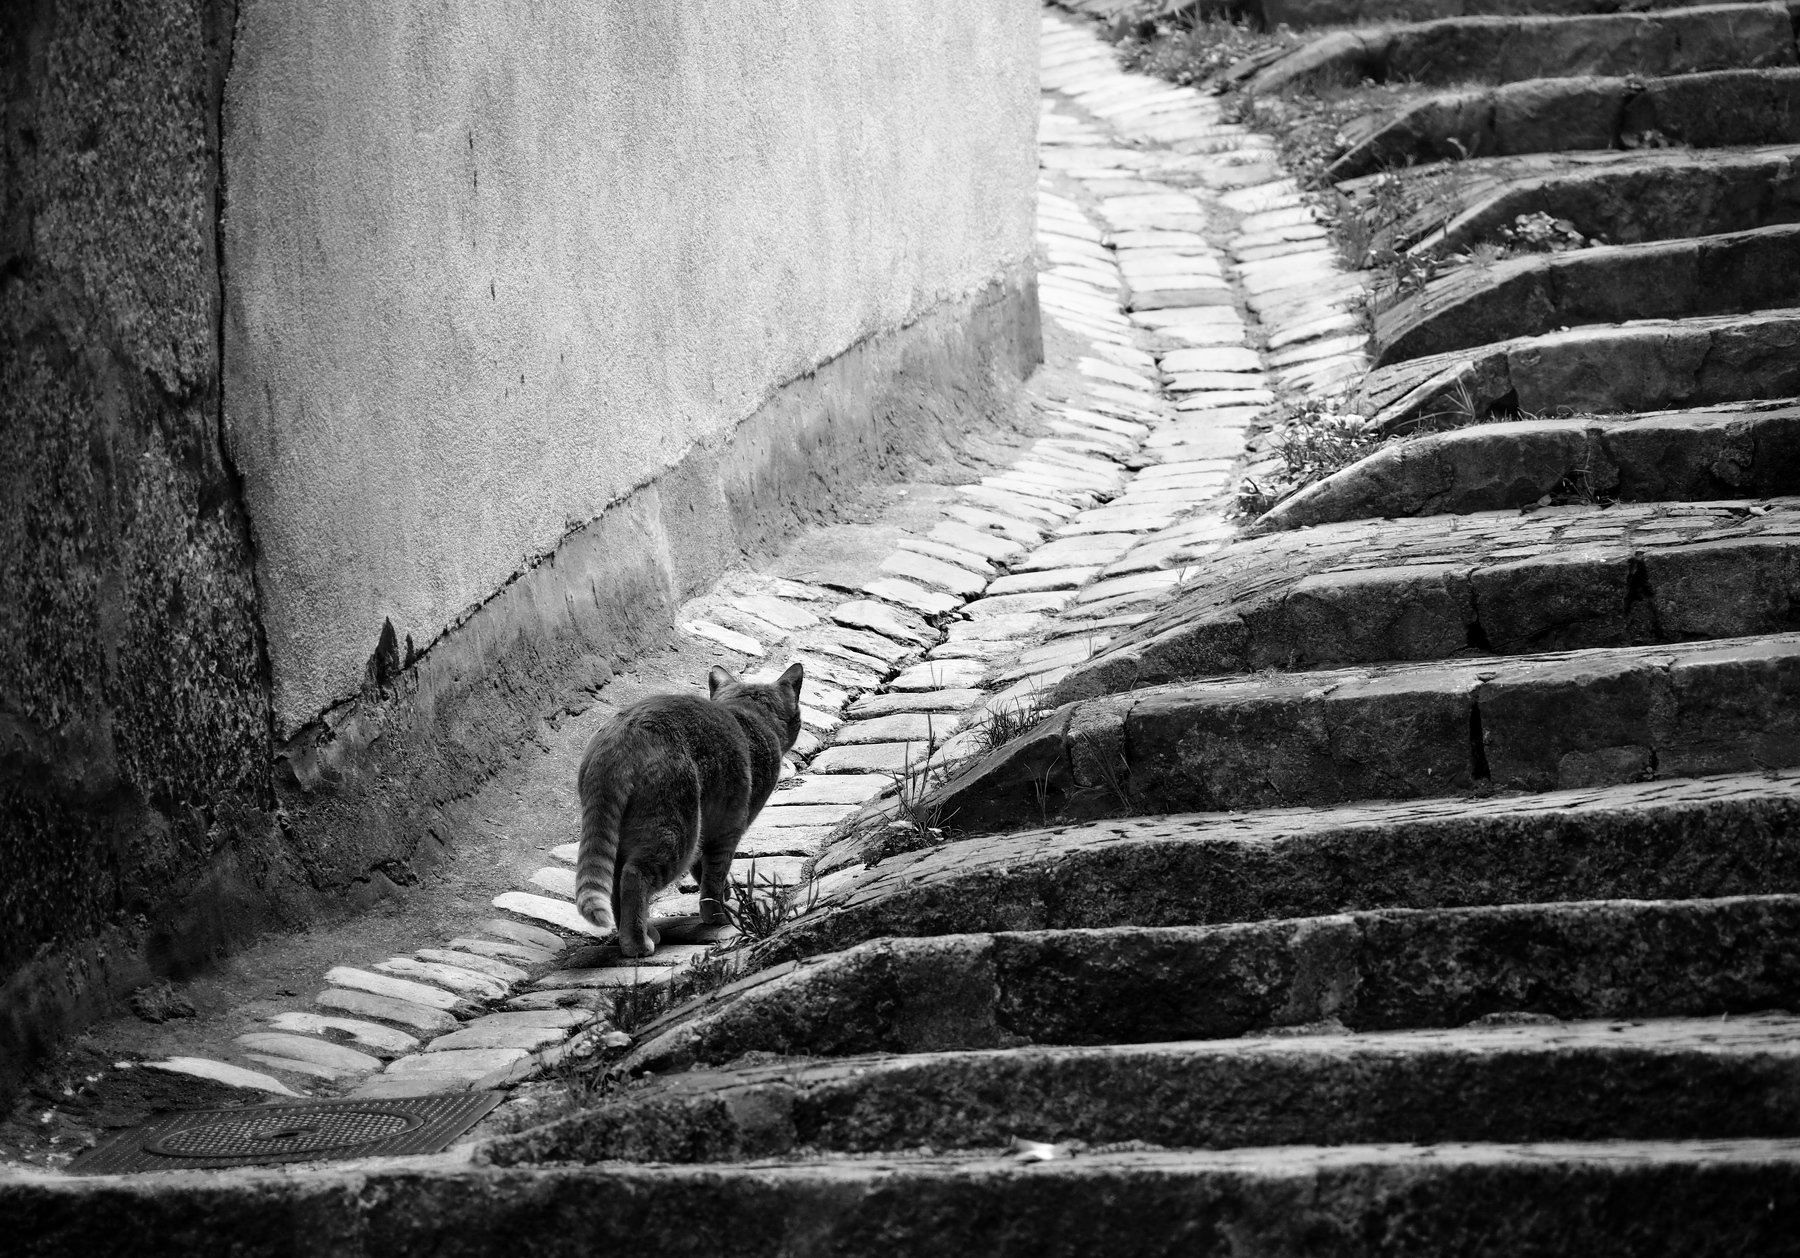 cat, city, path, stairs, way, old, road, animal, monochrome, geometry, stones, wall, Endegor